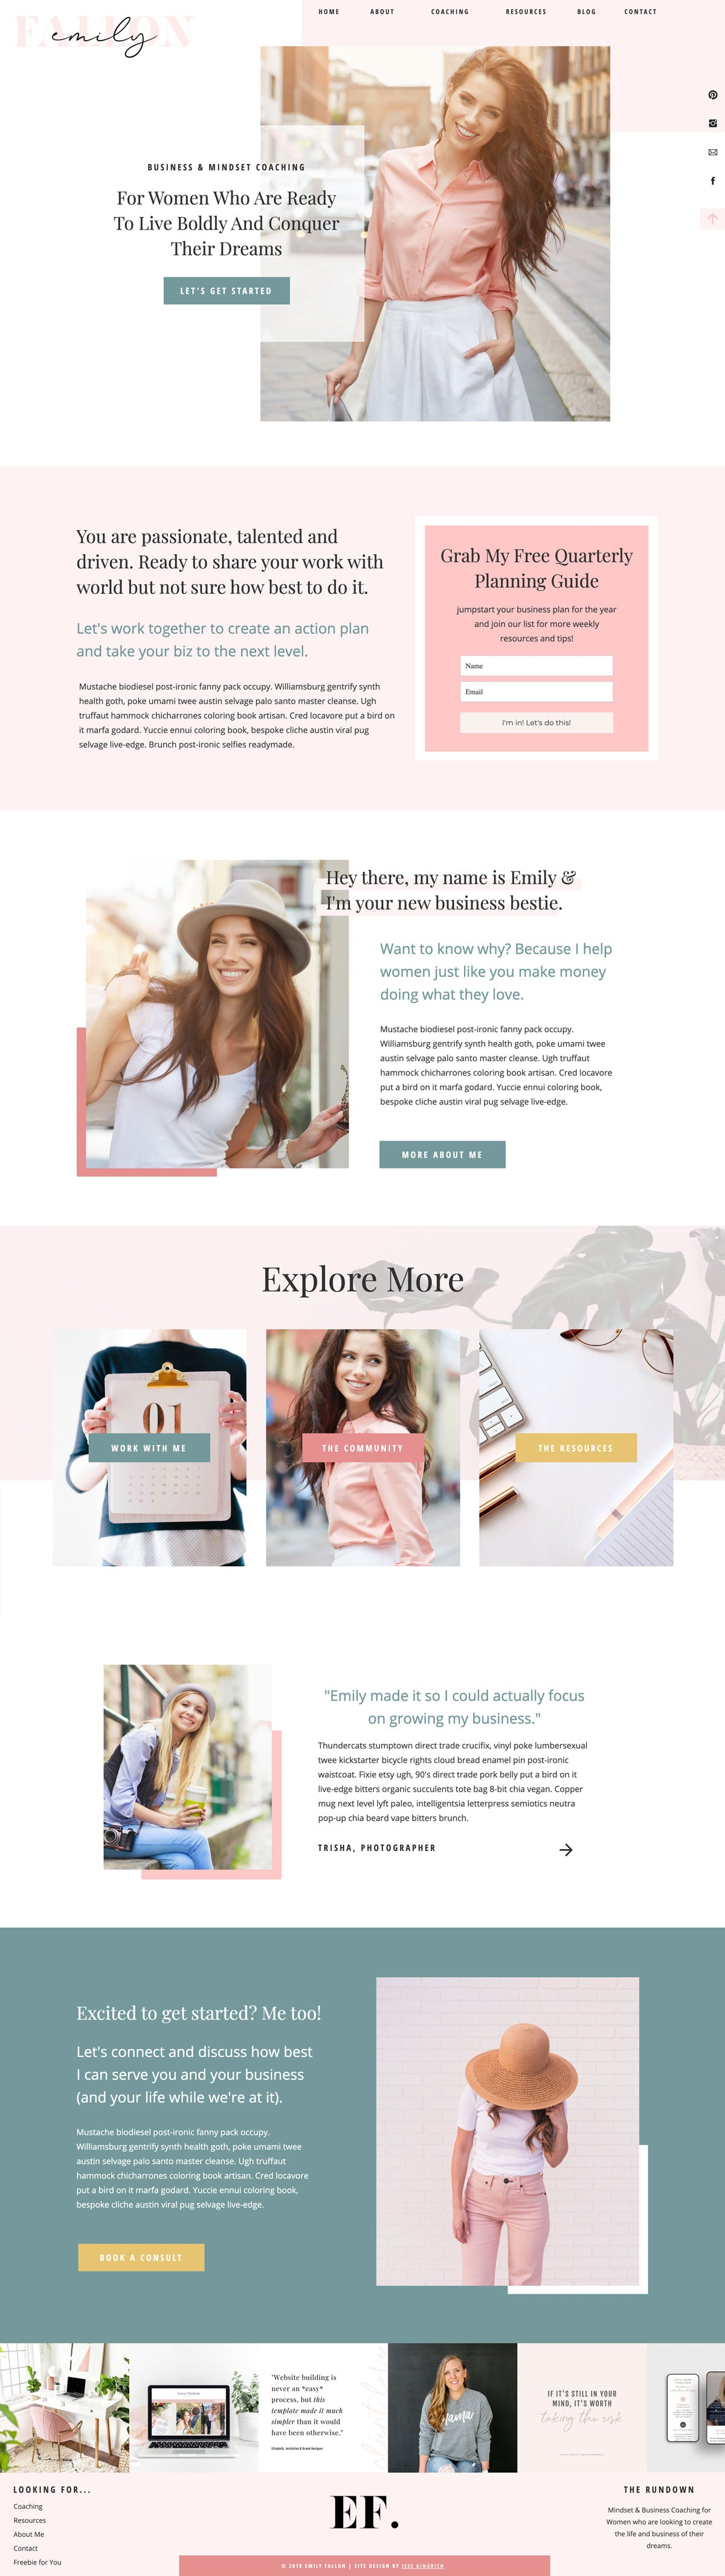 """Emily Fallon"" Showit Template - jessica gingrich"